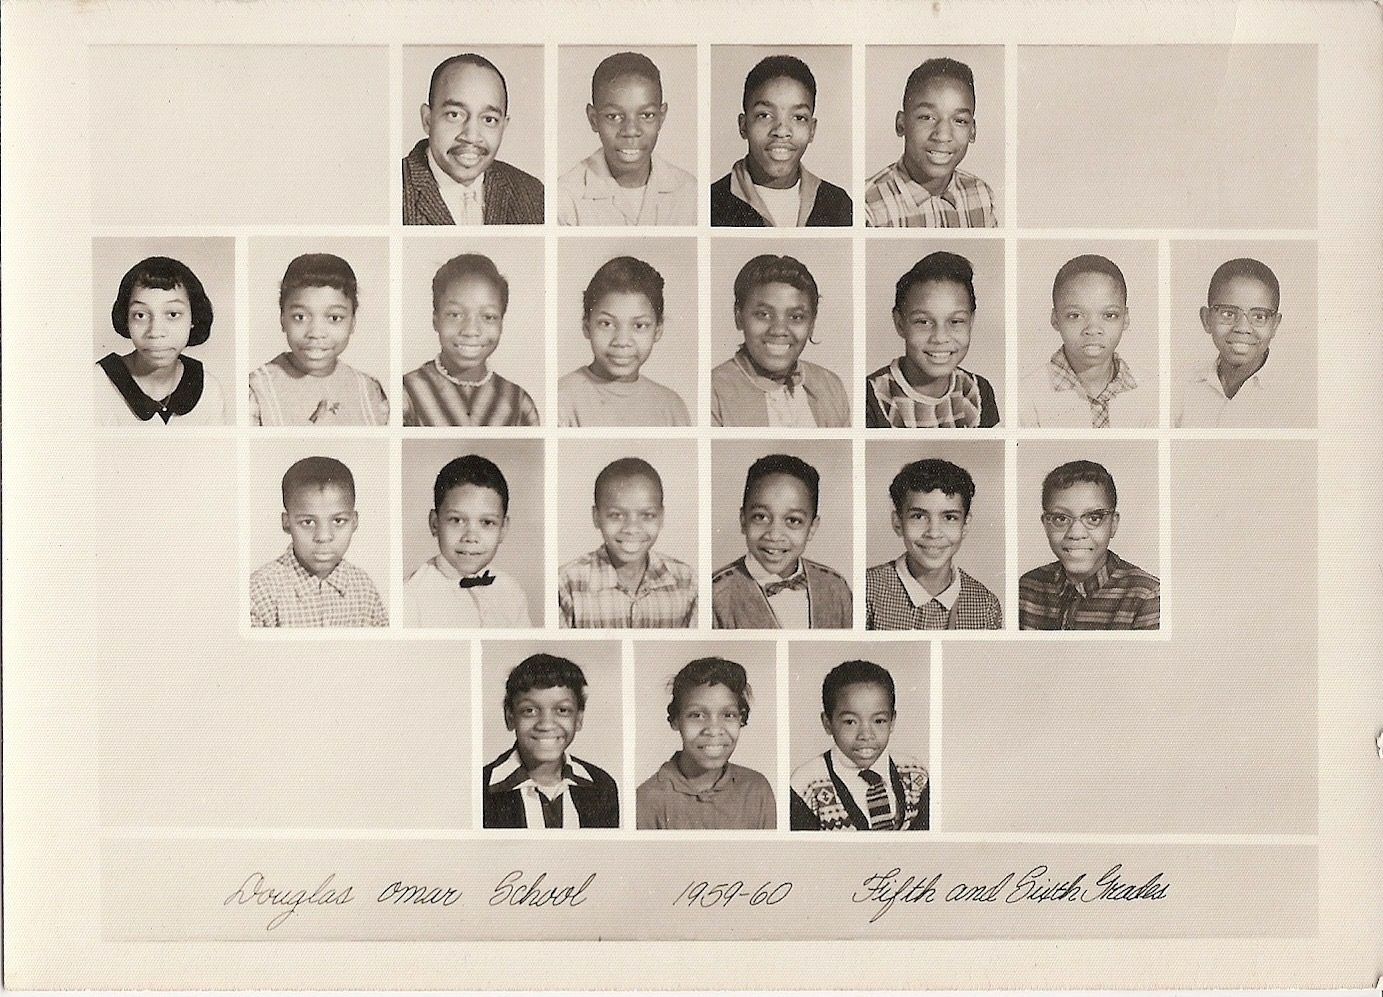 Omar Douglass School Year book 1959-1960.